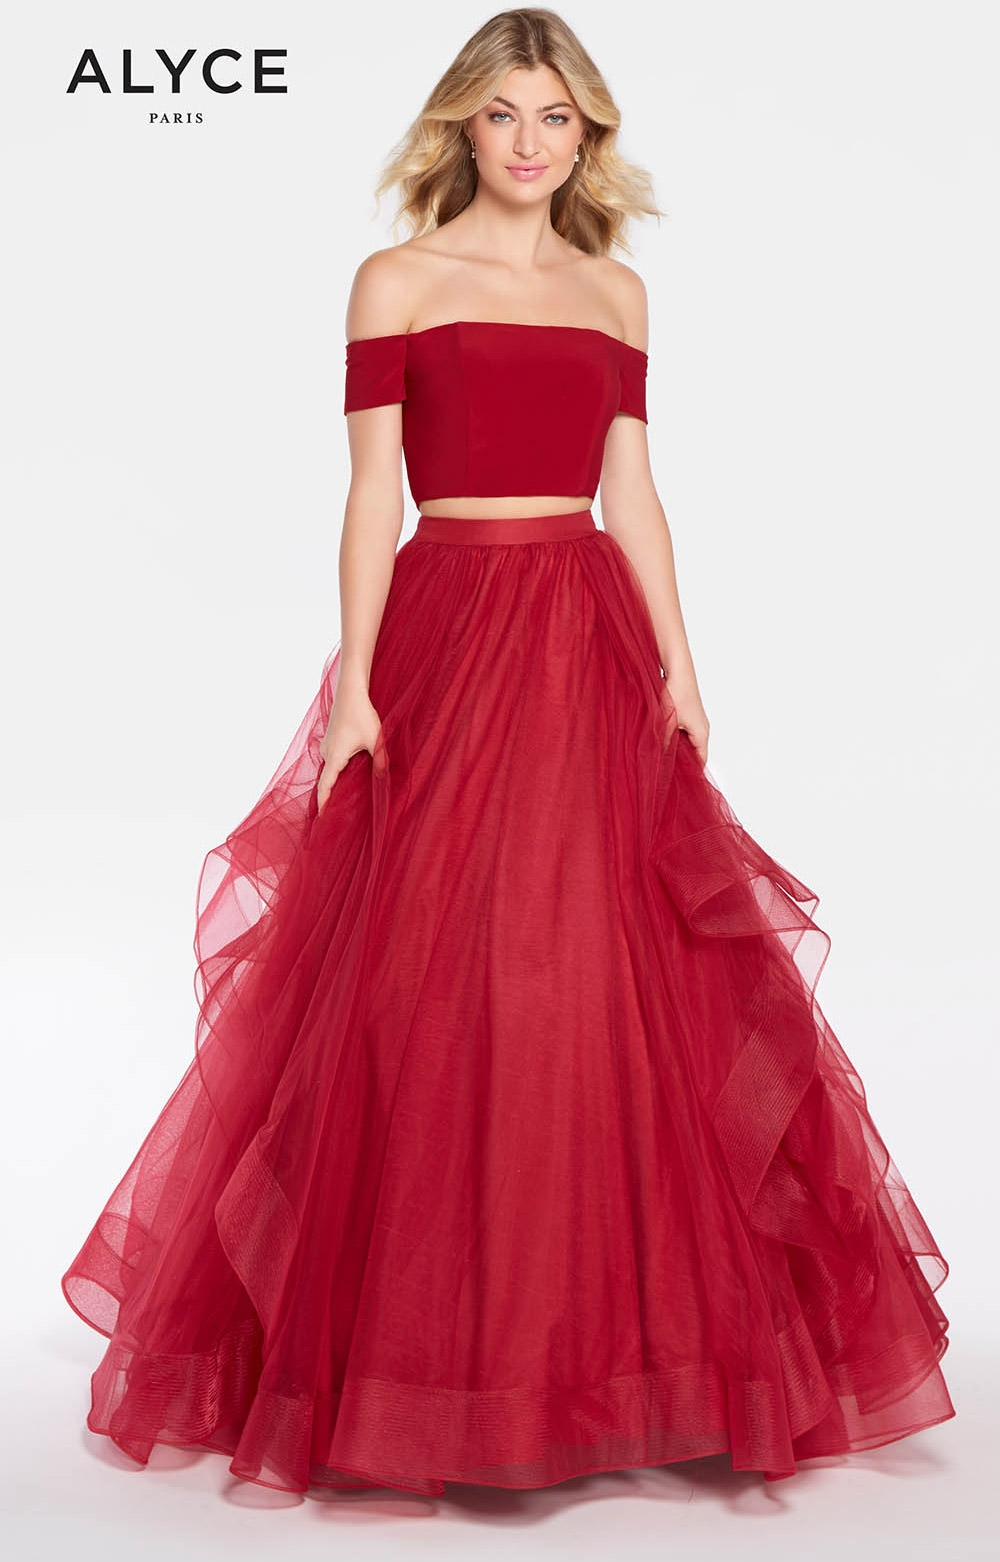 Alyce Paris 1295 Long 2 Piece Tulle Ball Gown Prom Dress